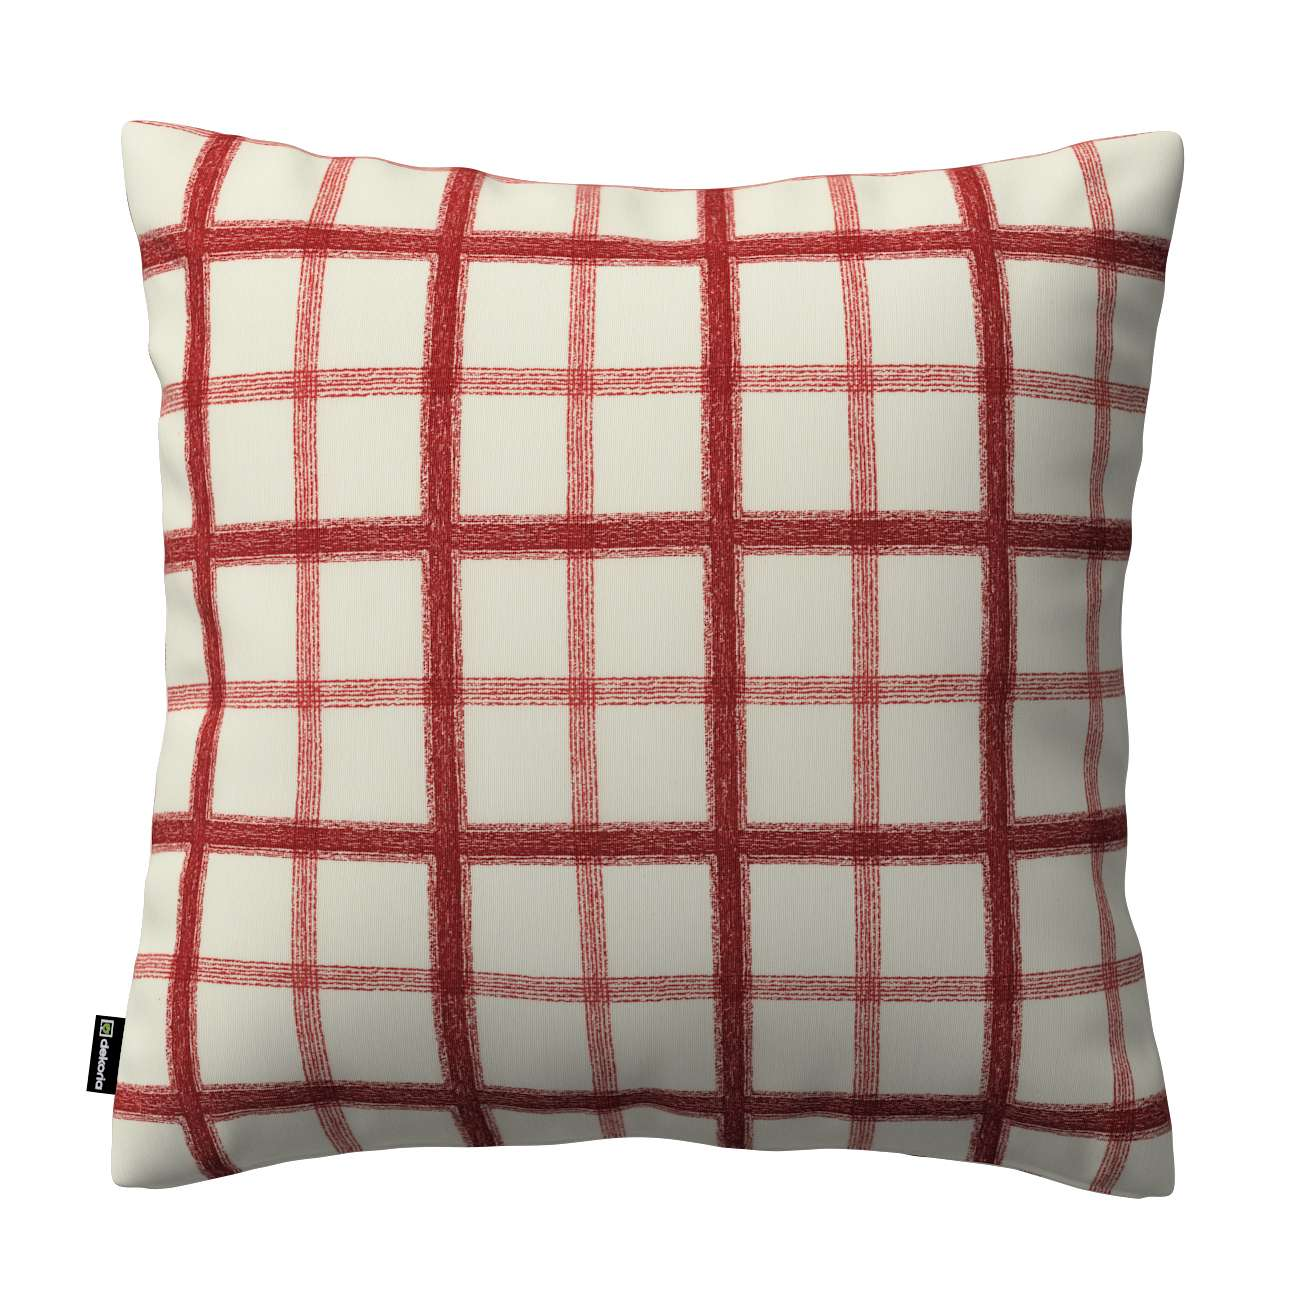 Kinga cushion cover 43 x 43 cm (17 x 17 inch) in collection Avinon, fabric: 131-15